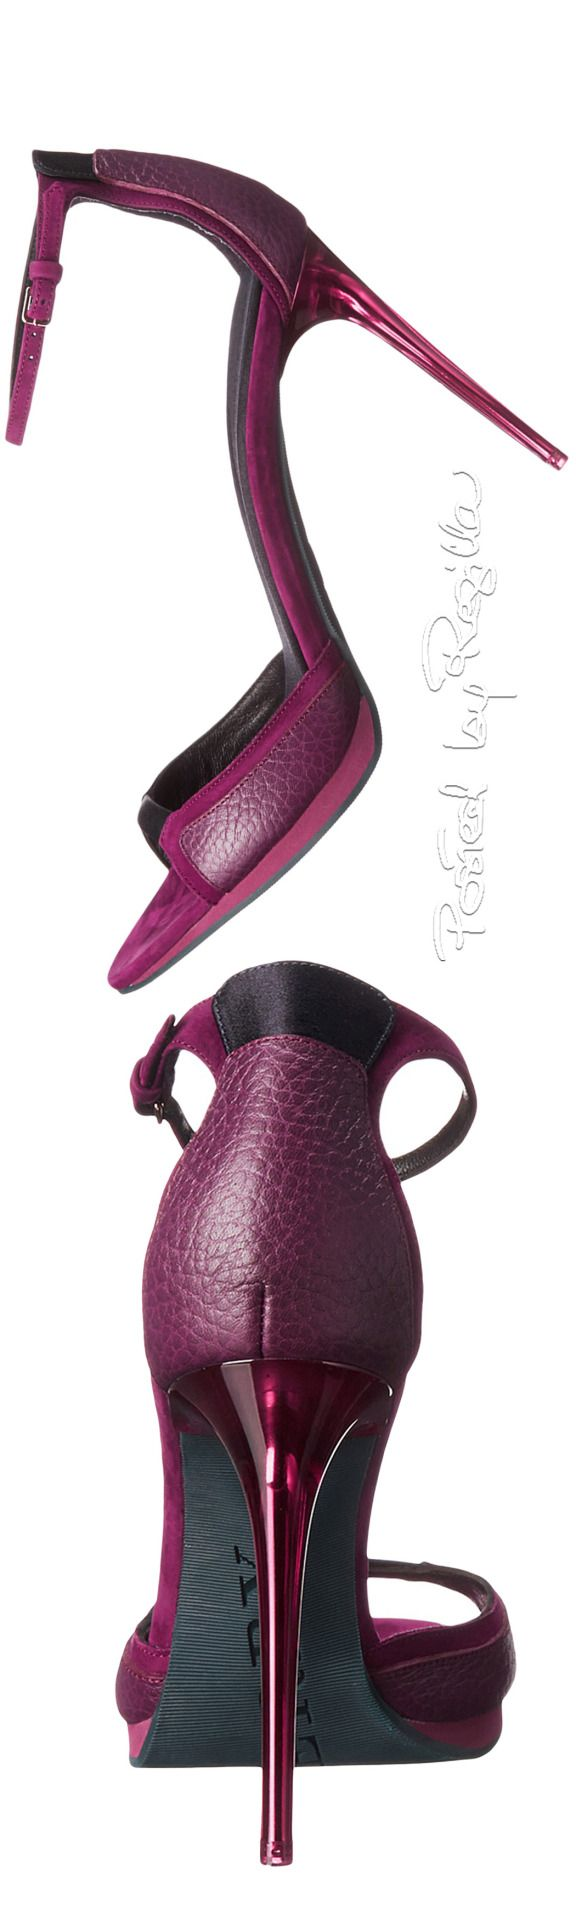 Burberry ~ Burgundy Leather Sandals....Uploaded By www.1stand2ndtimearound.etsy.com